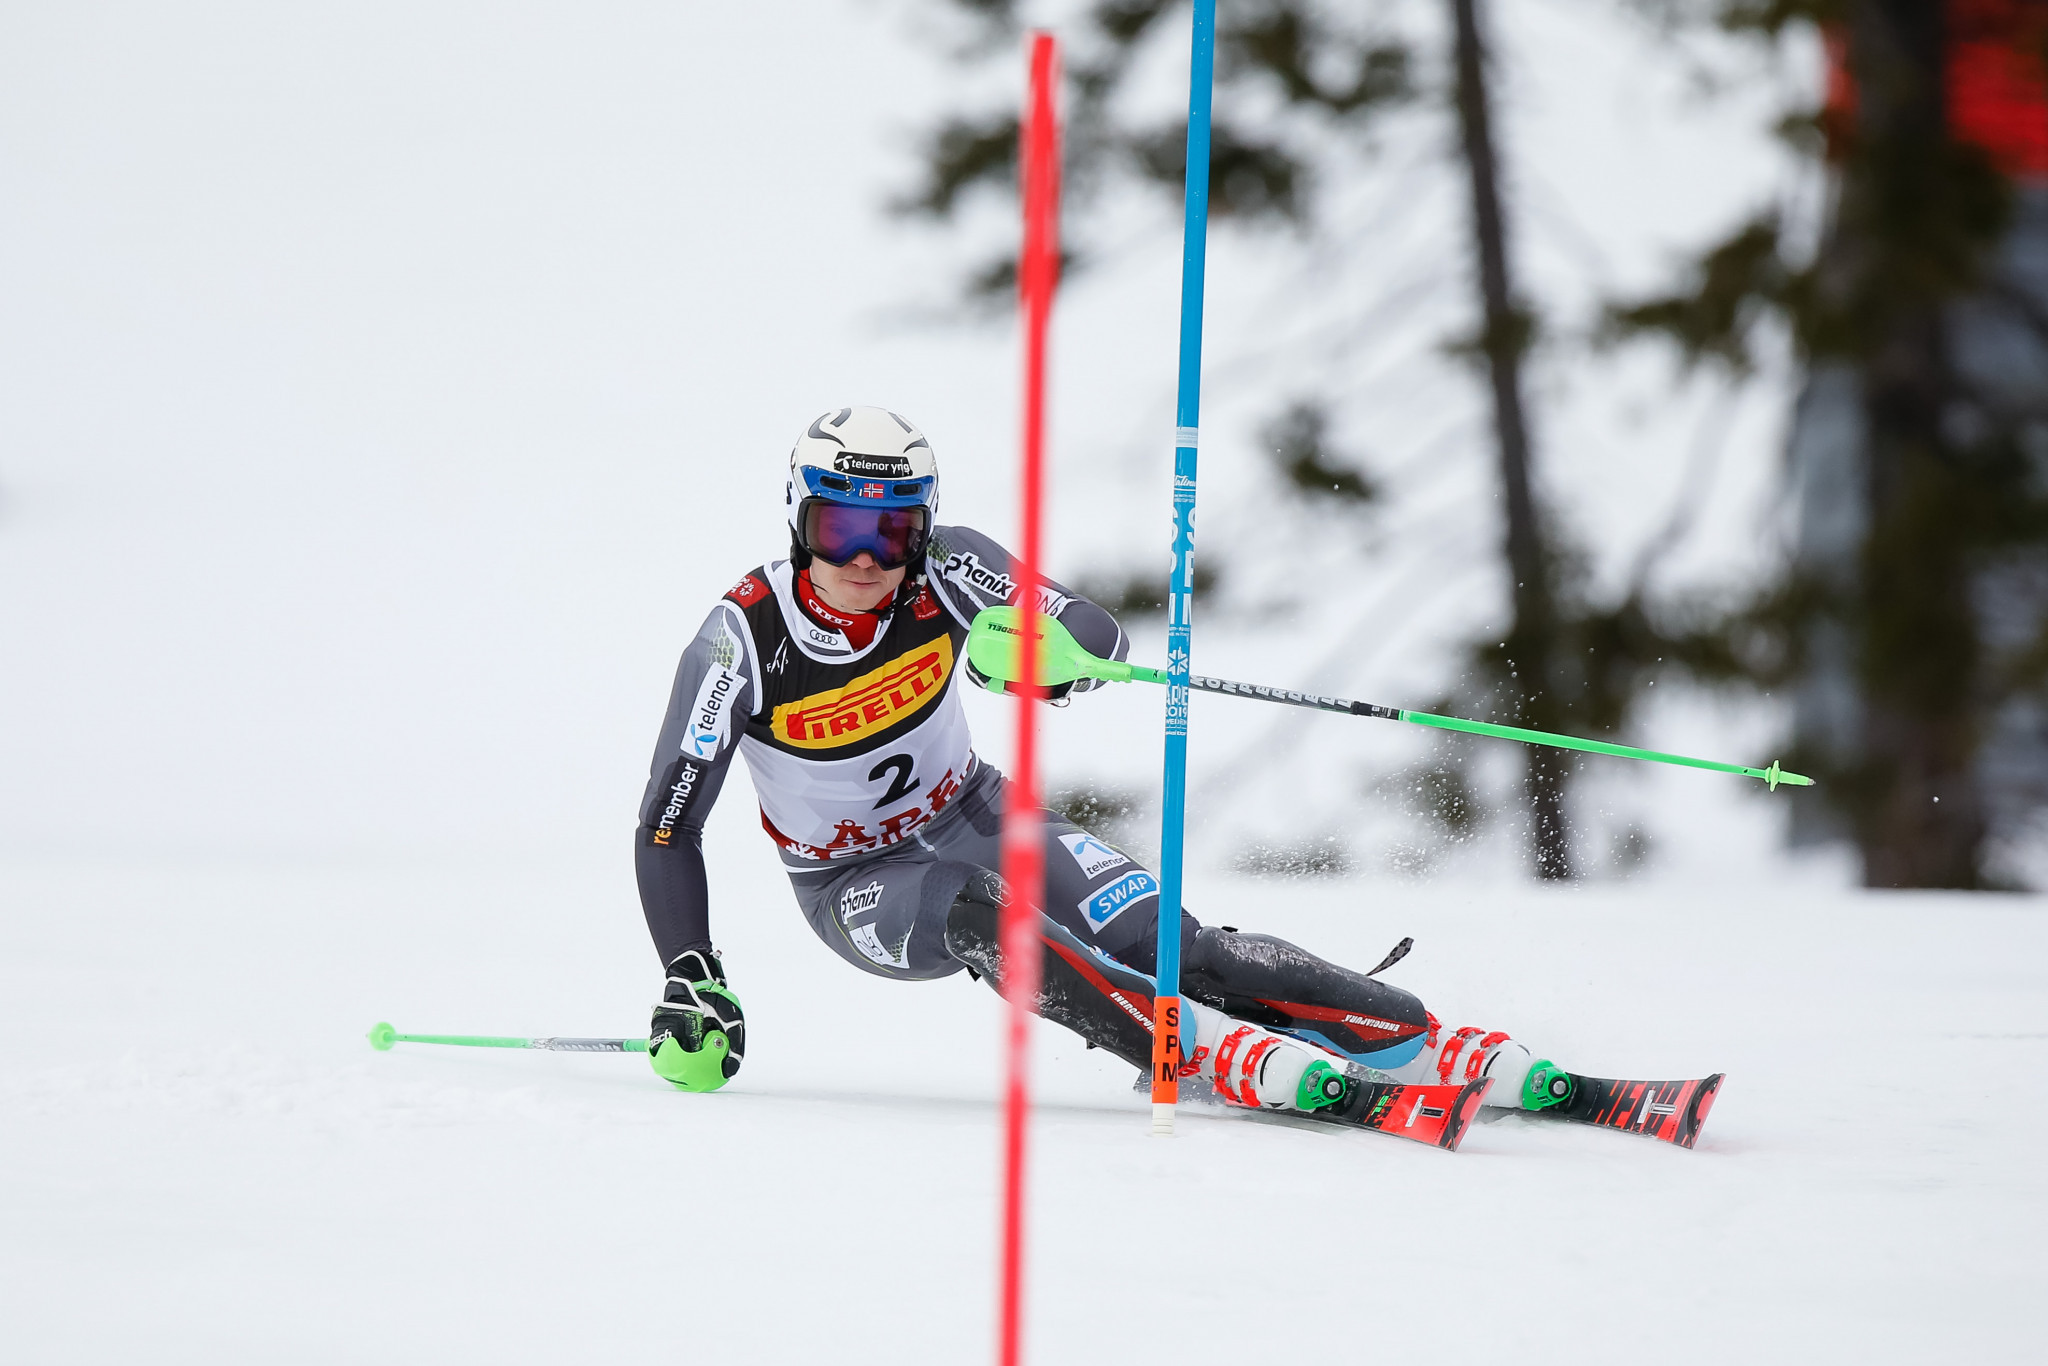 Henrik Kristoffersen was hoping to add to his giant slalom victory ©Getty Images